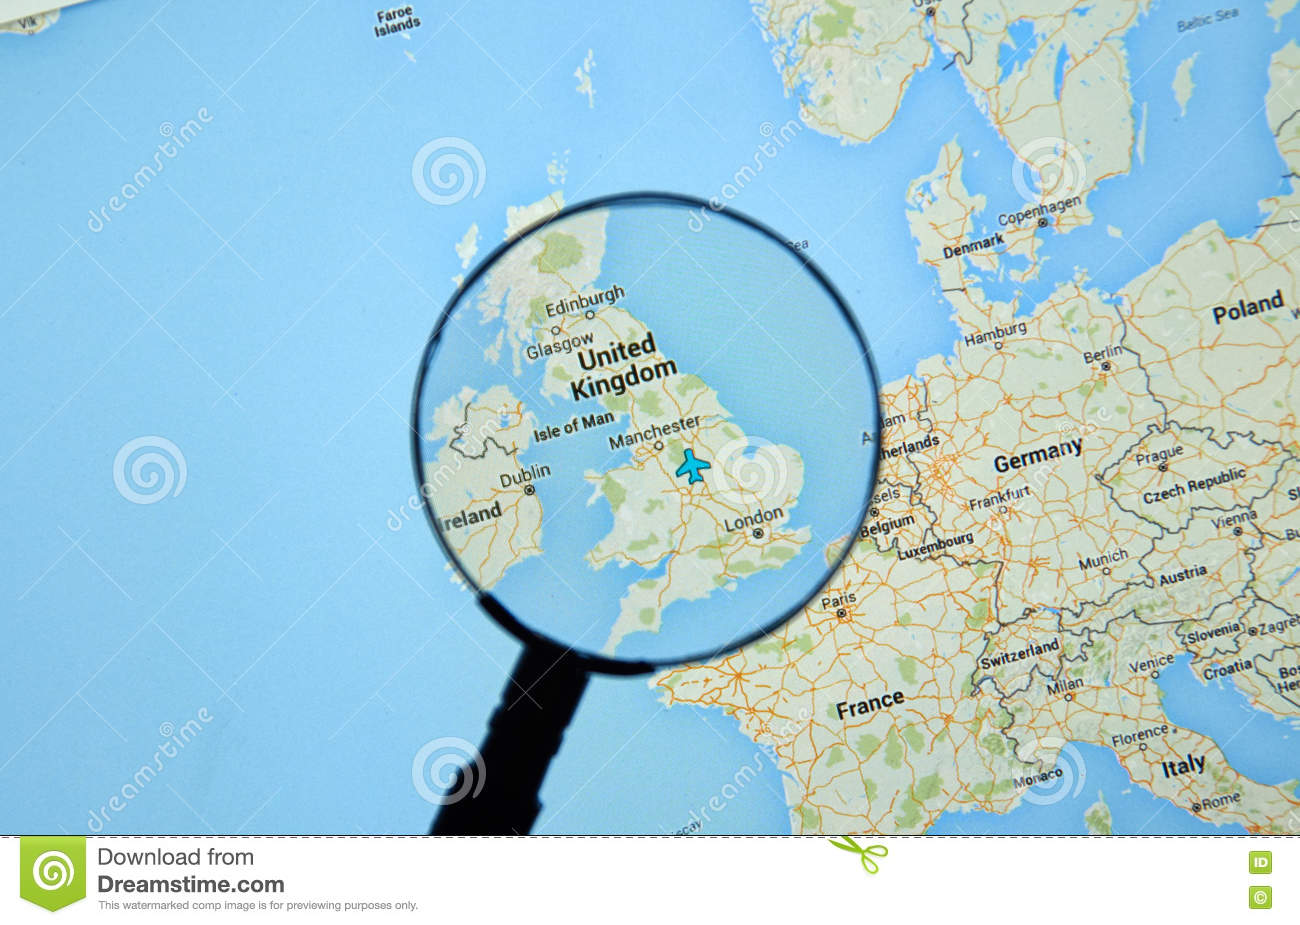 Map Of England Google Maps.United Kingdom On Google Maps Editorial Stock Image Image Of